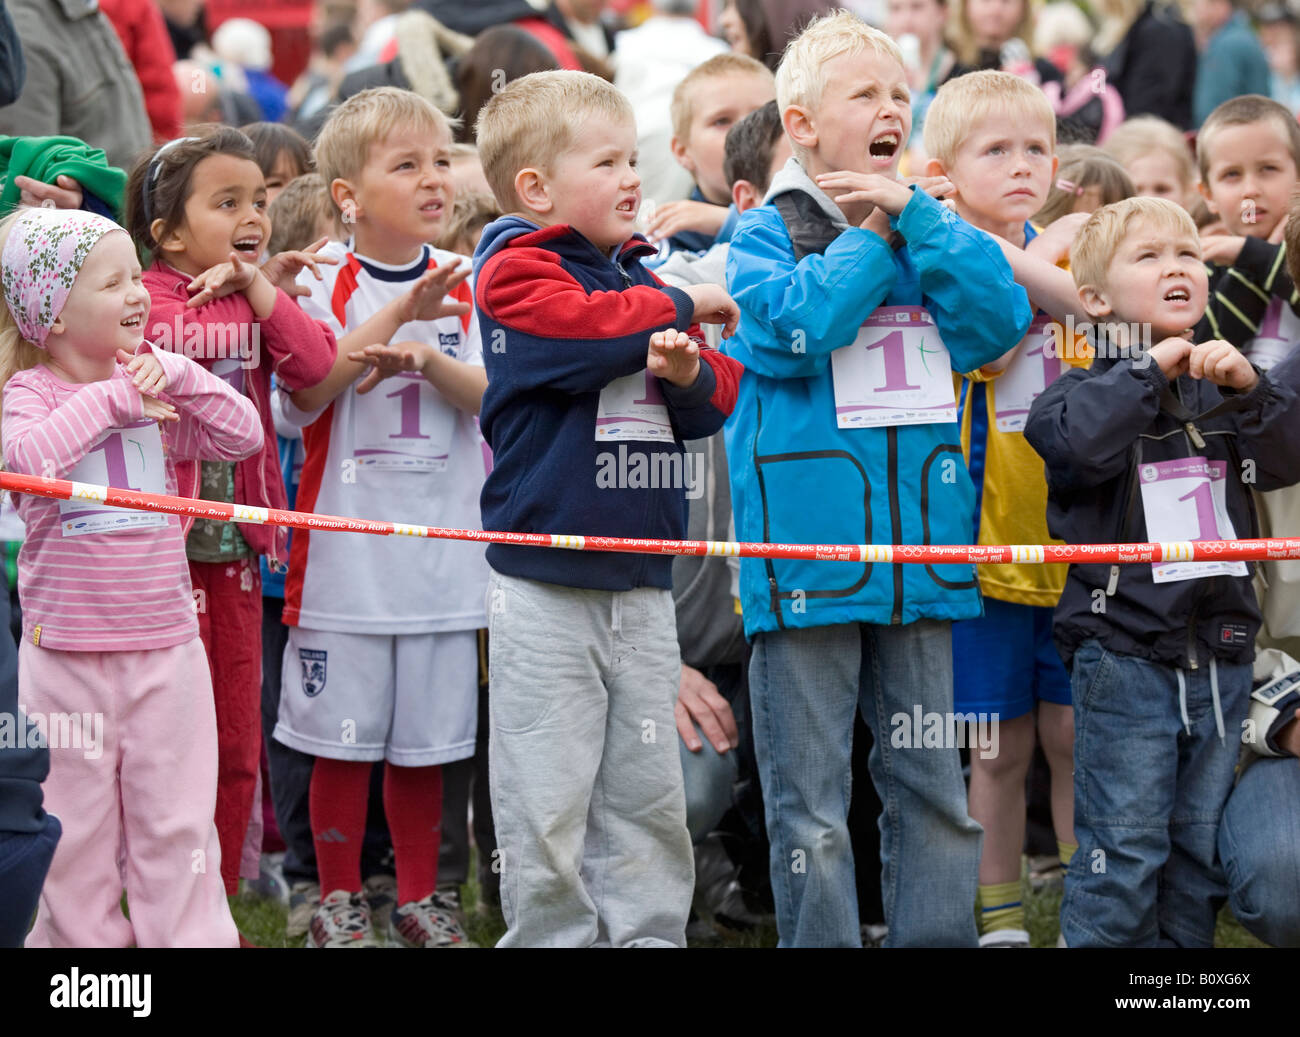 Children up to 6 years of age on start line with start numbers on warming up to run a race Stock Photo